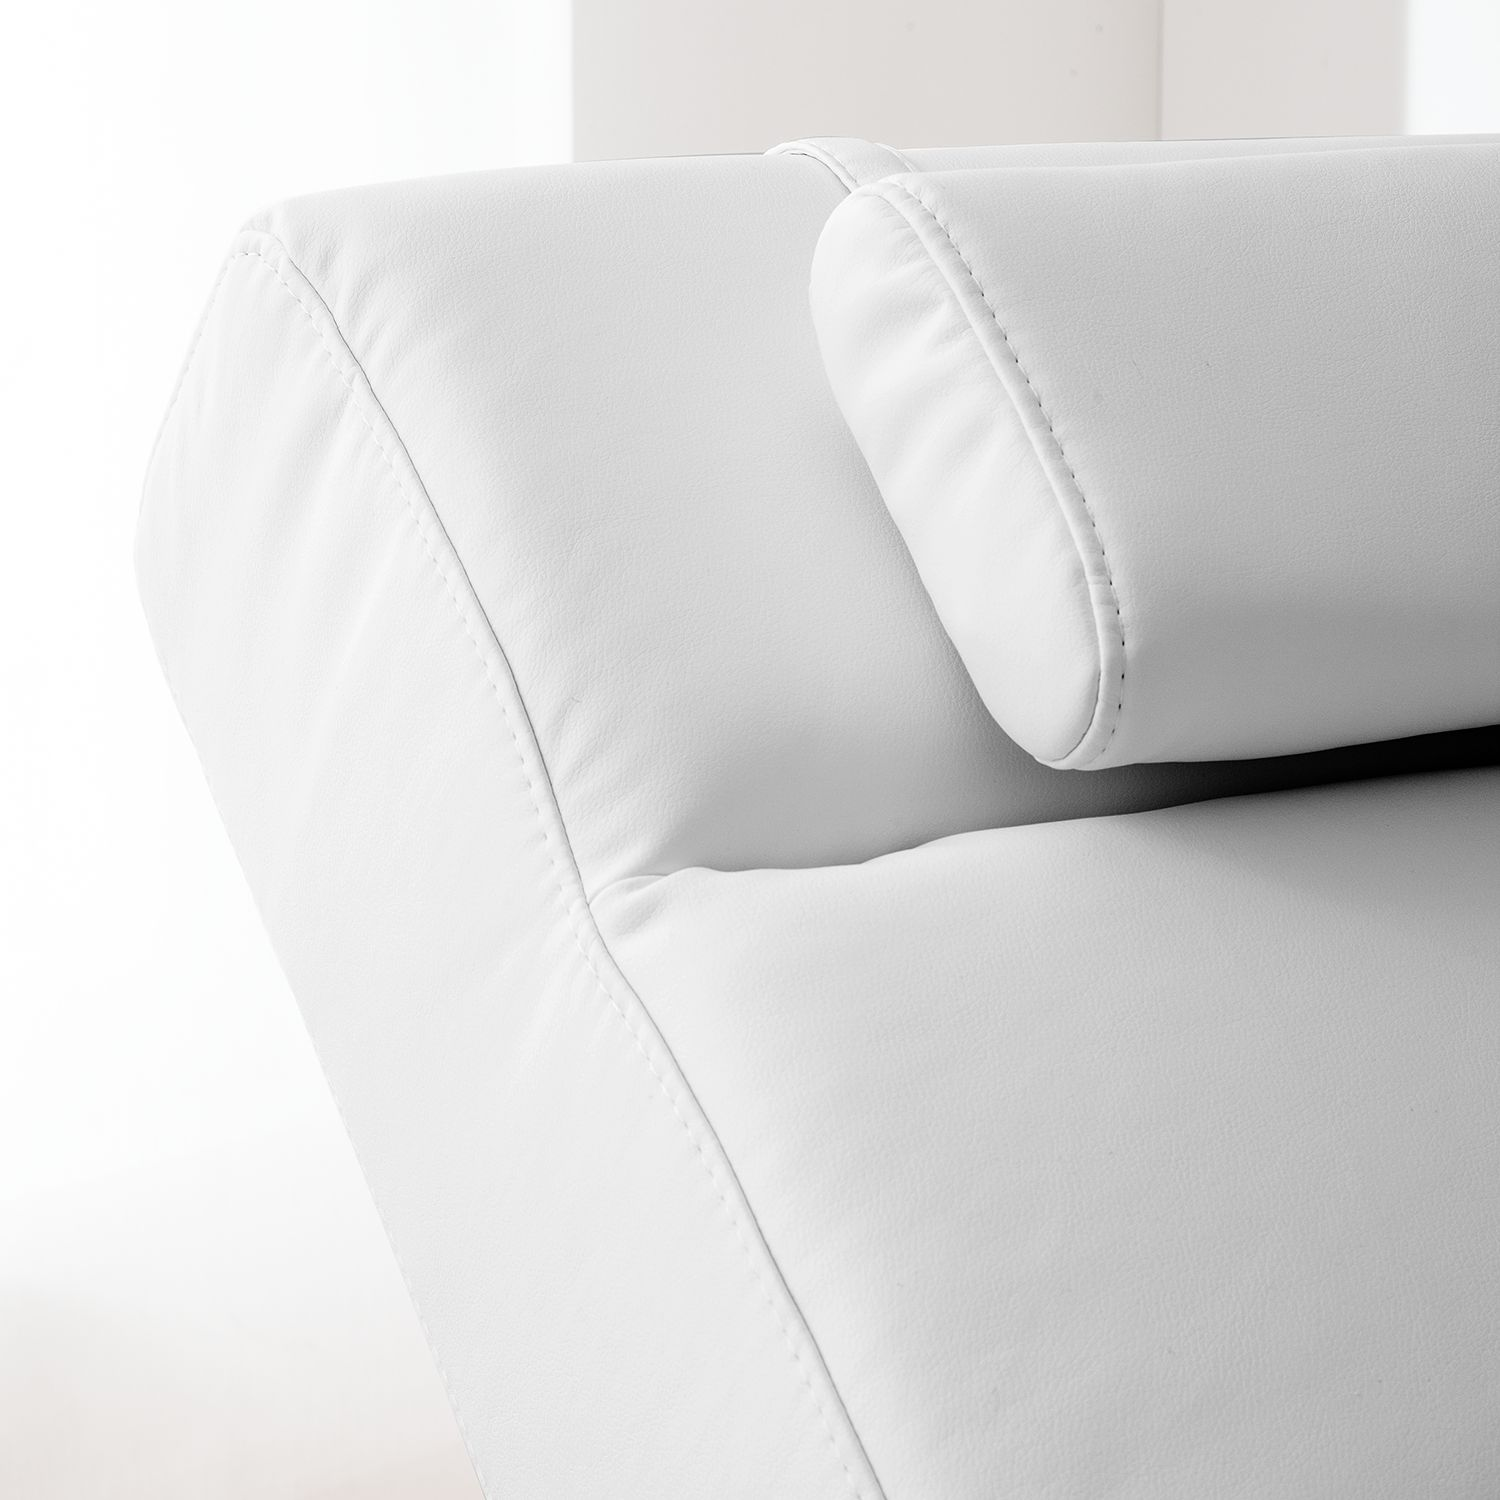 Relaxation Relaxation Chaise Longue Longue Califfo Califfo De Chaise Chaise De Longue iuwPkXZlOT